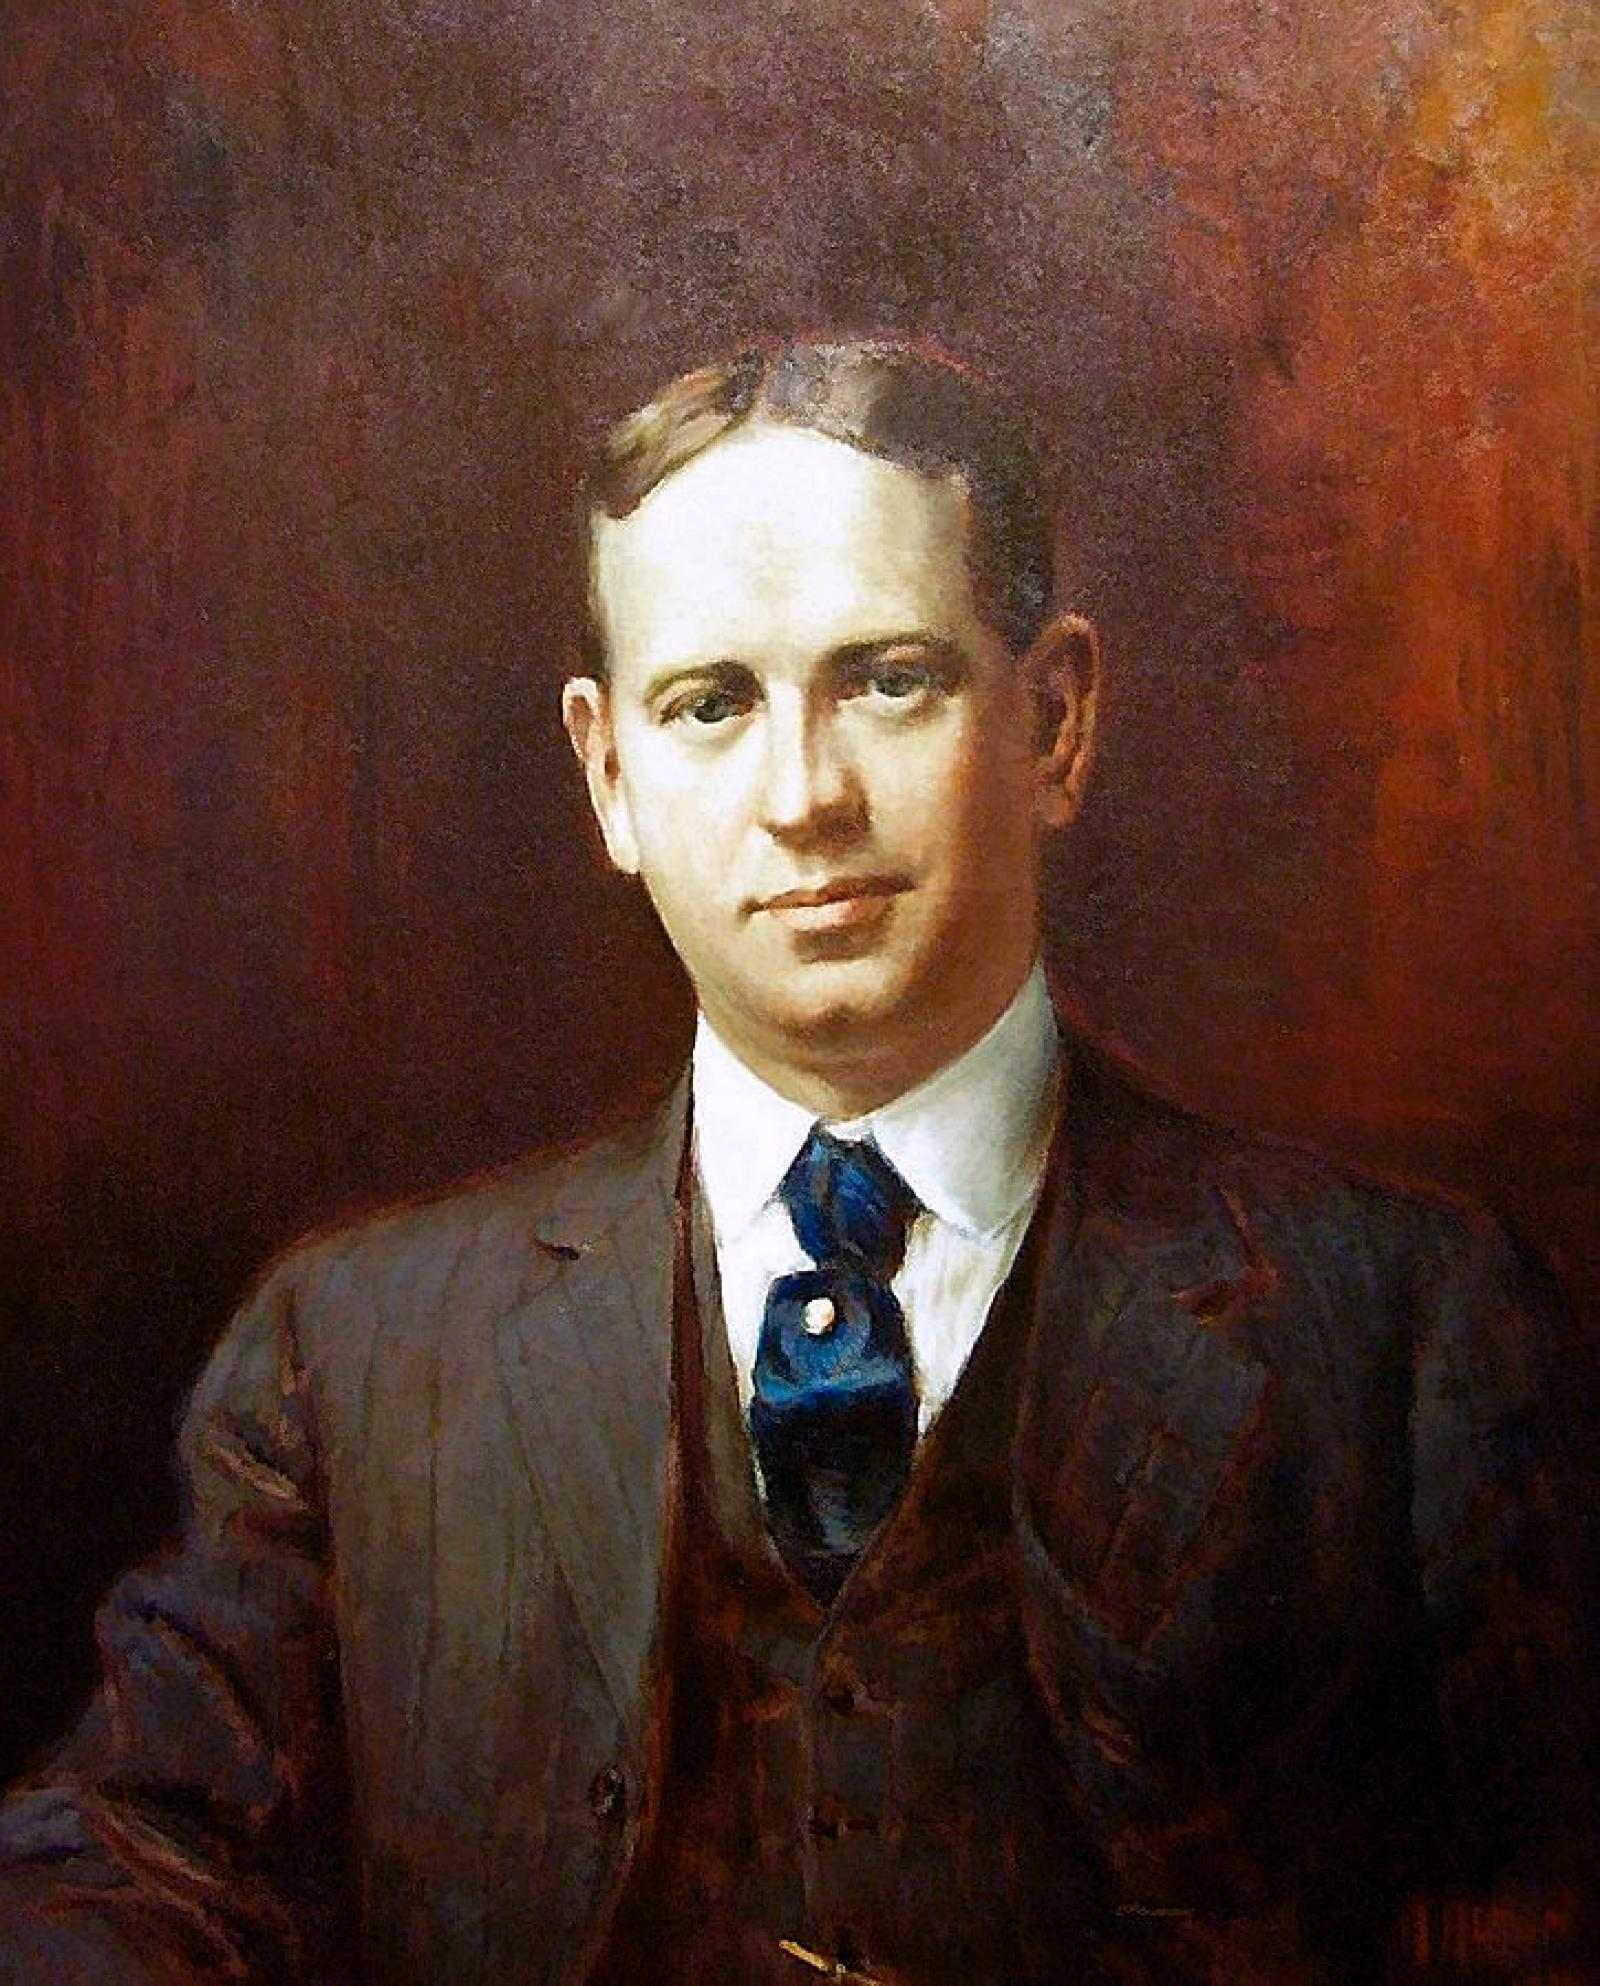 A portrait of a young gentleman in a brown suit and blue tie facing forwards.